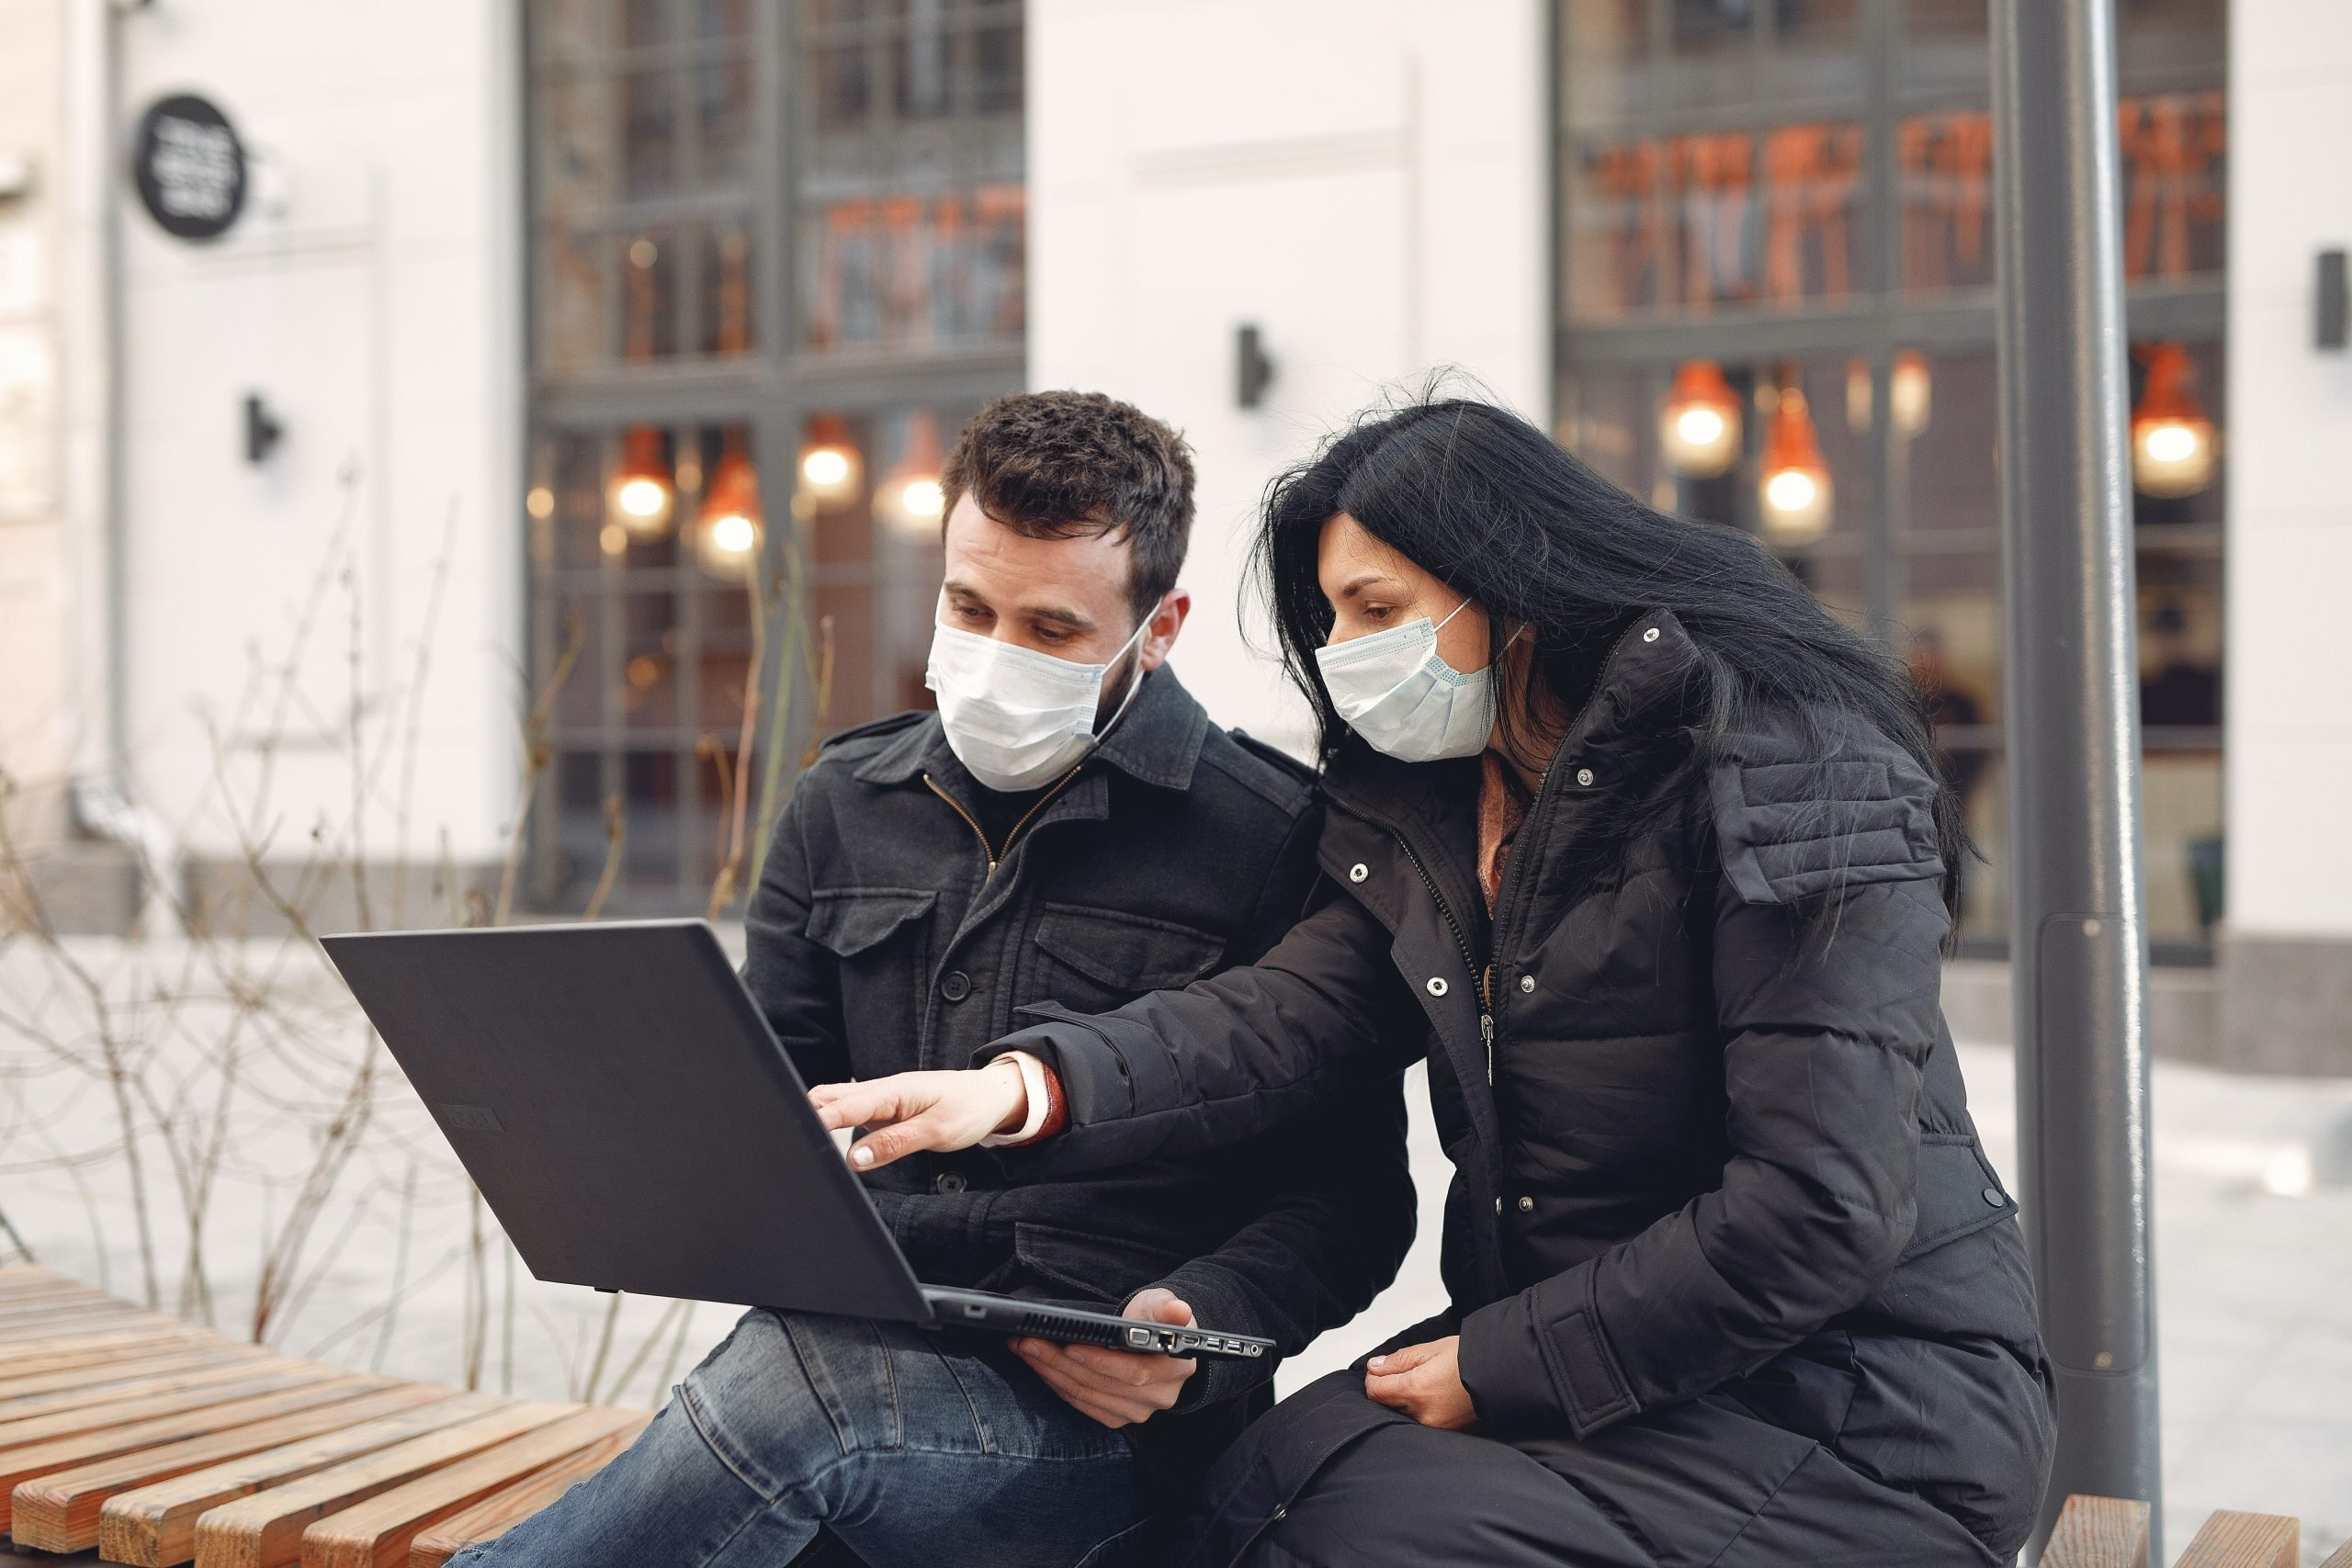 photo of man and woman wearing COVID-19 face masks working on laptop